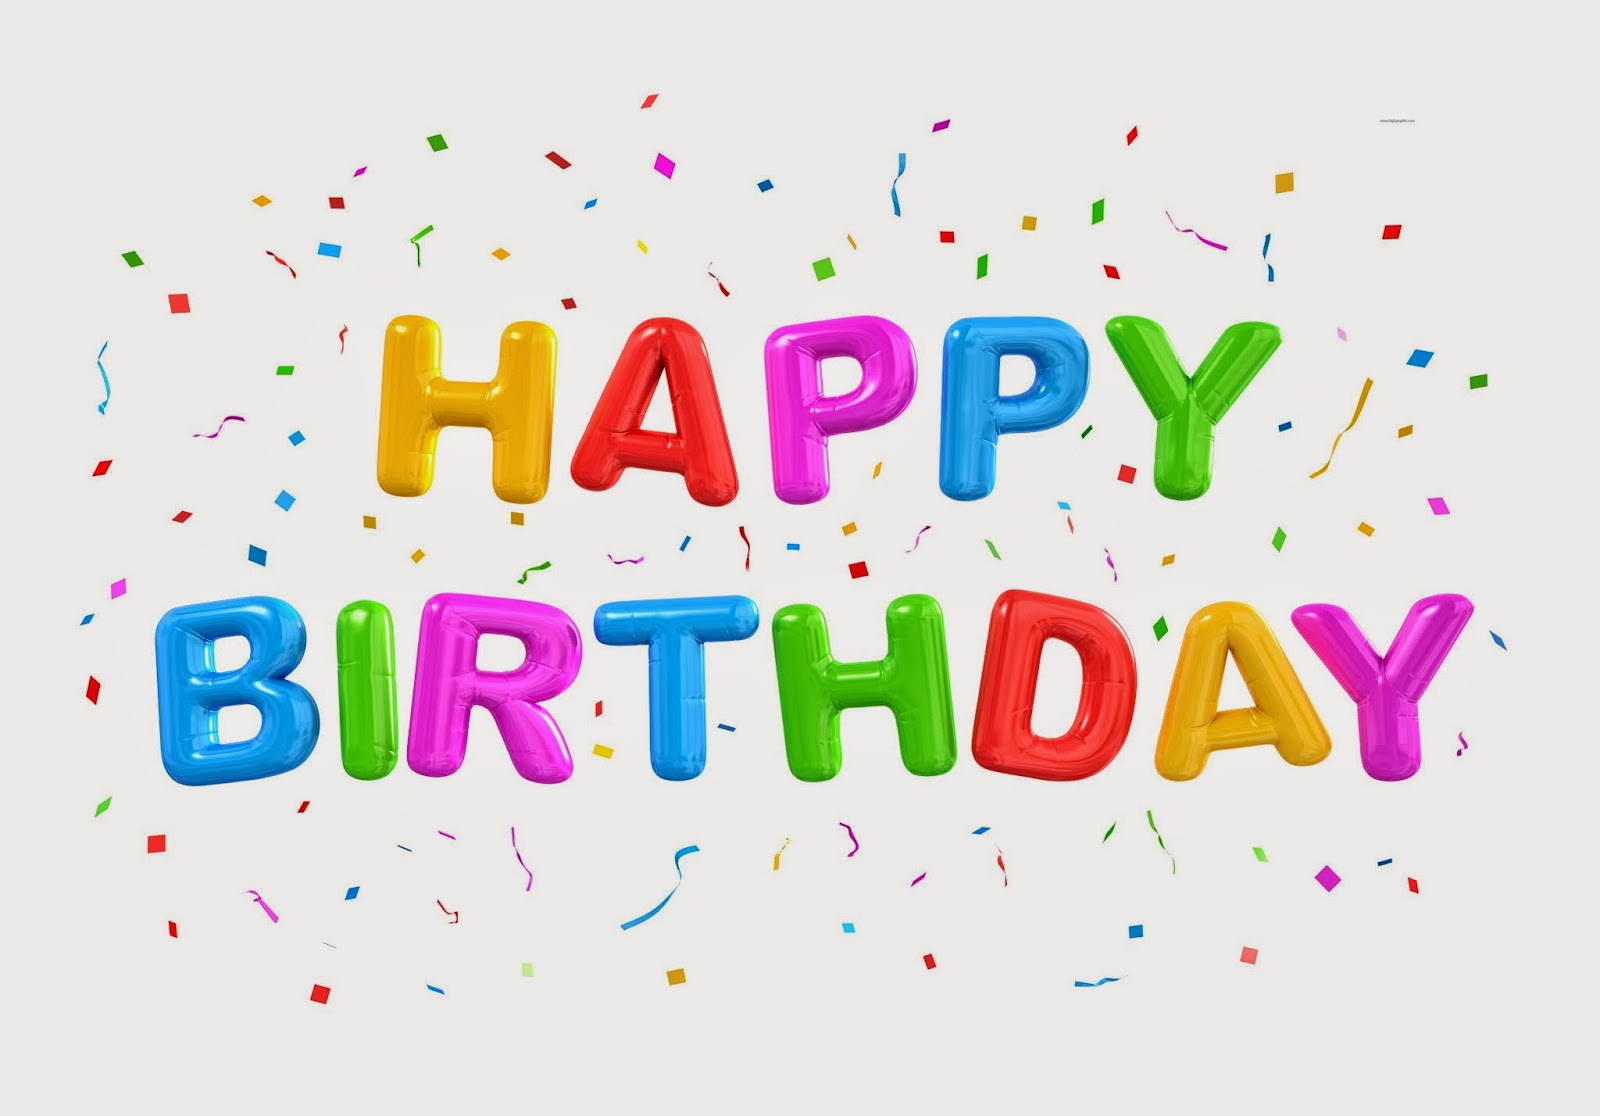 Happy-Birthday-colorful-Text-with-white-background.jpg